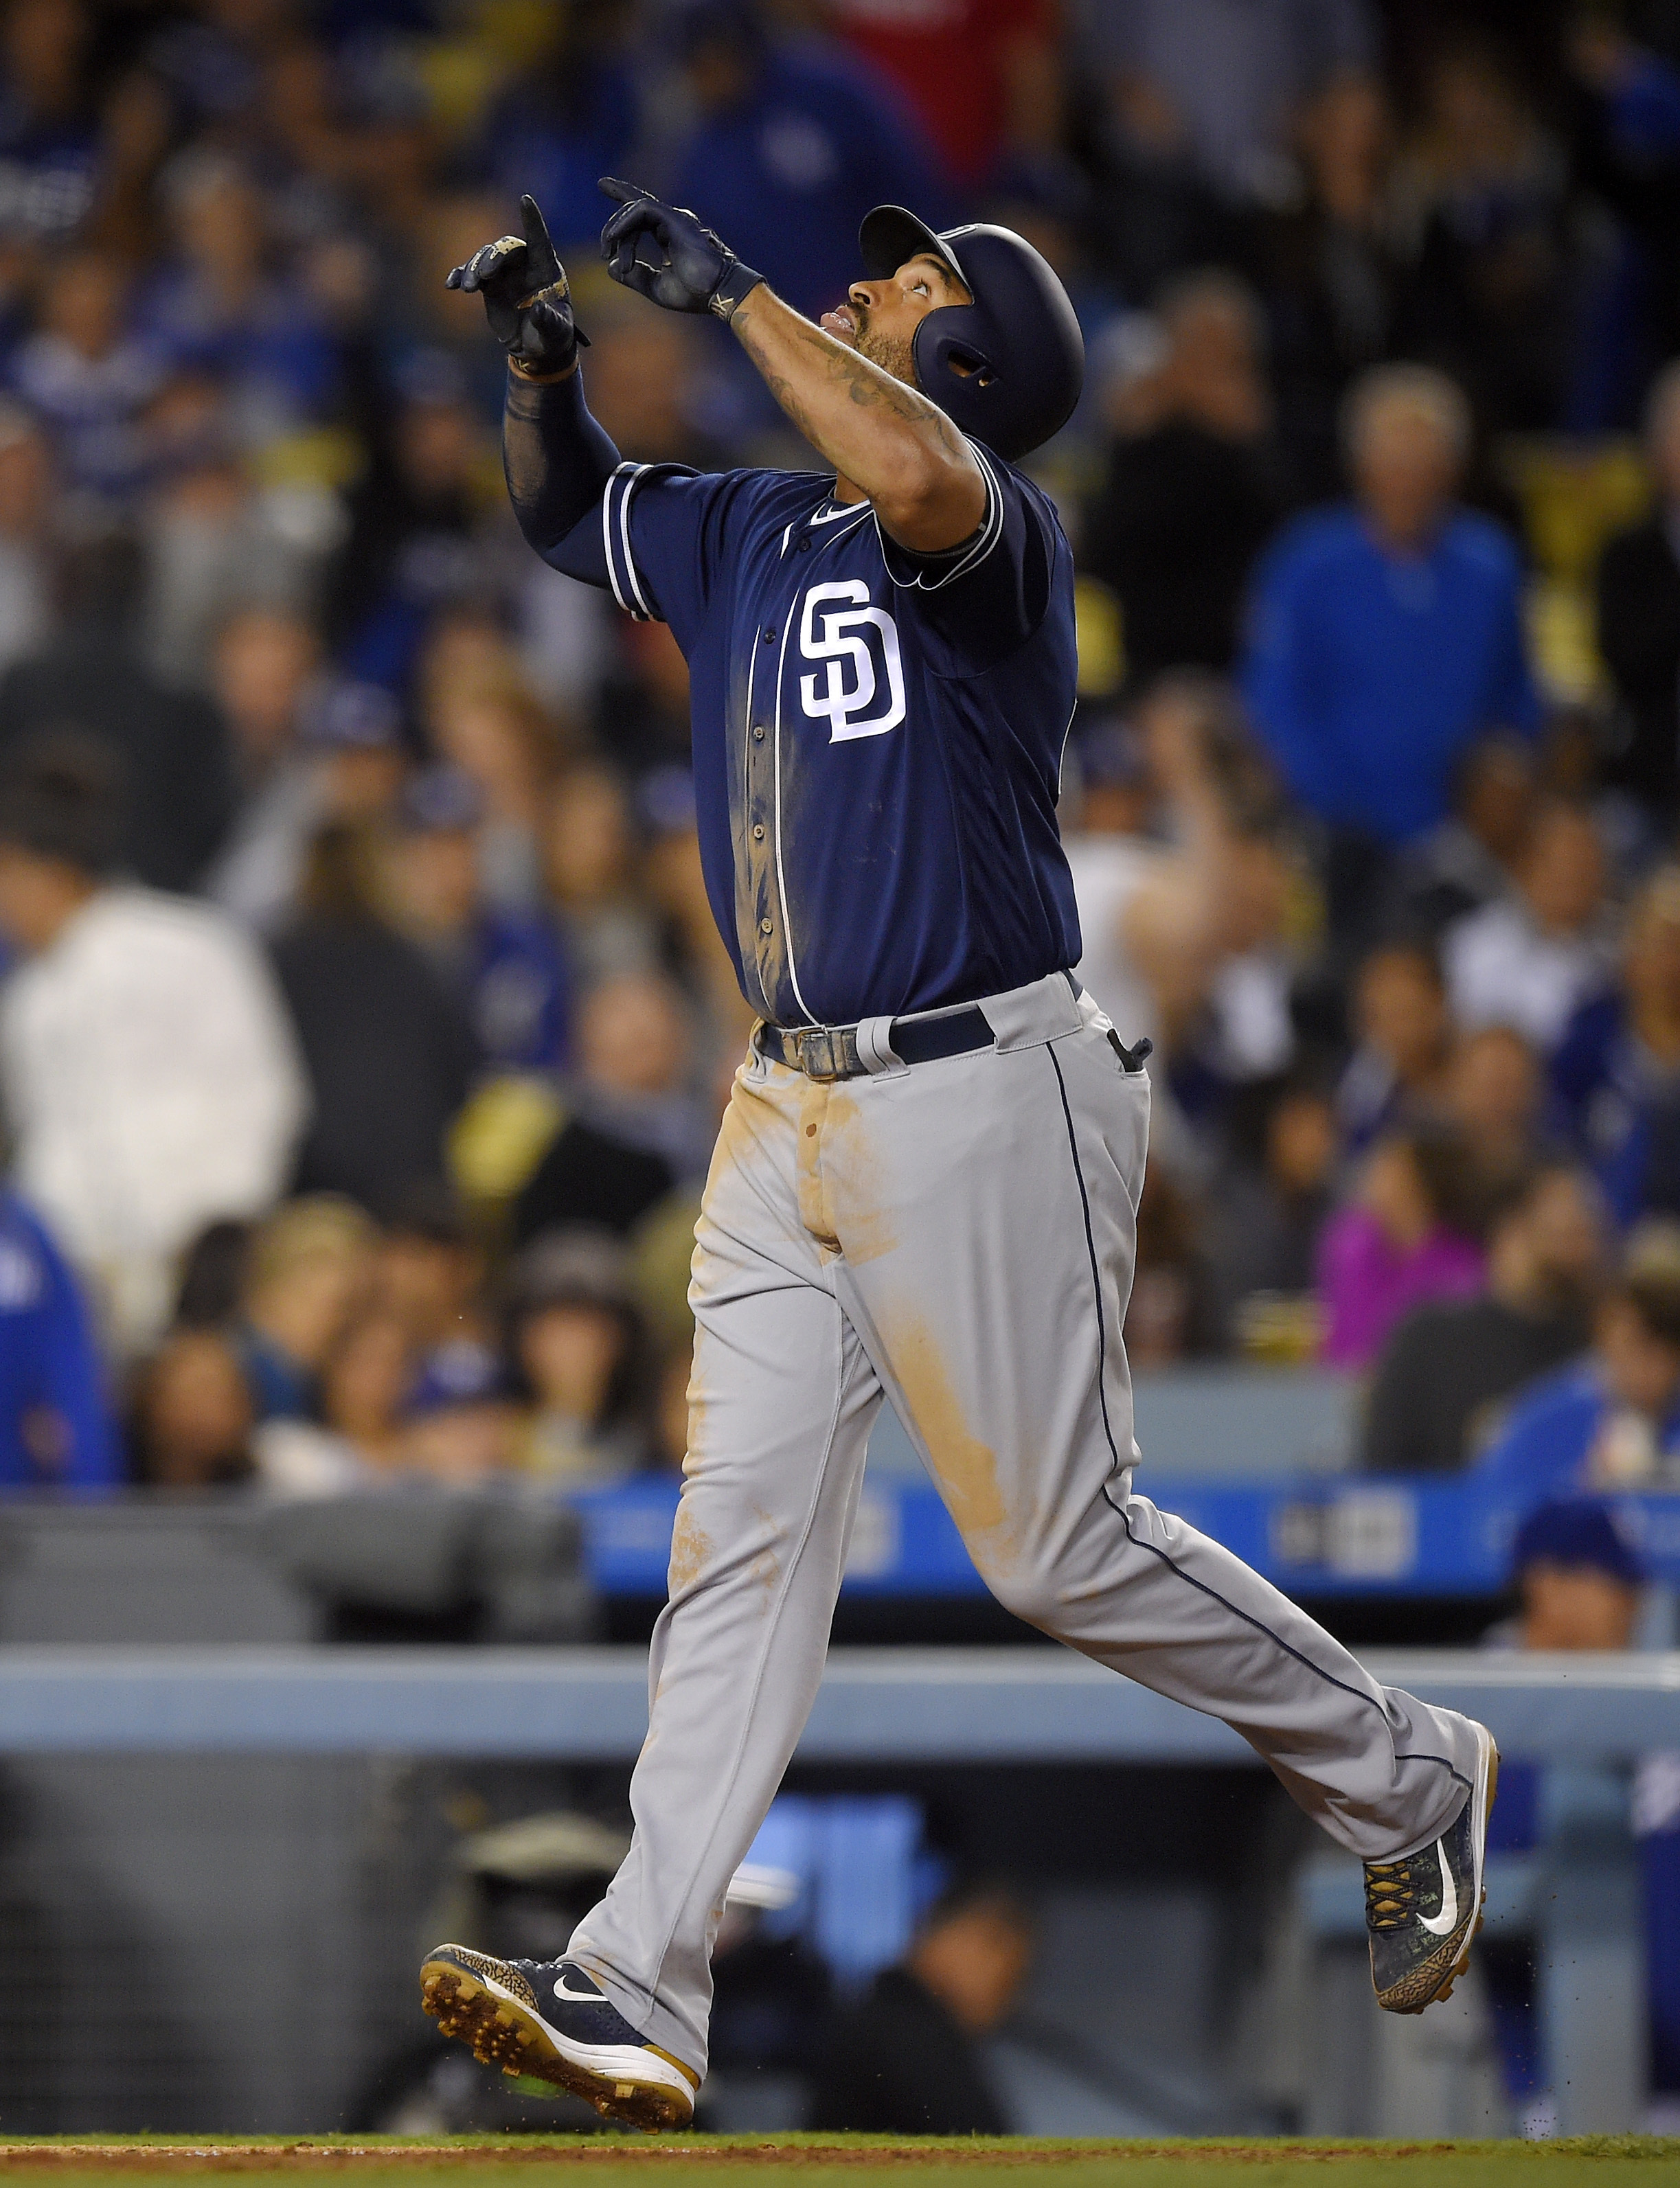 San Diego Padres' Matt Kemp points to the sky after hitting a three-run home run during the eighth inning of a baseball game against the Los Angeles Dodgers, Friday, April 29, 2016, in Los Angeles. (AP Photo/Mark J. Terrill)